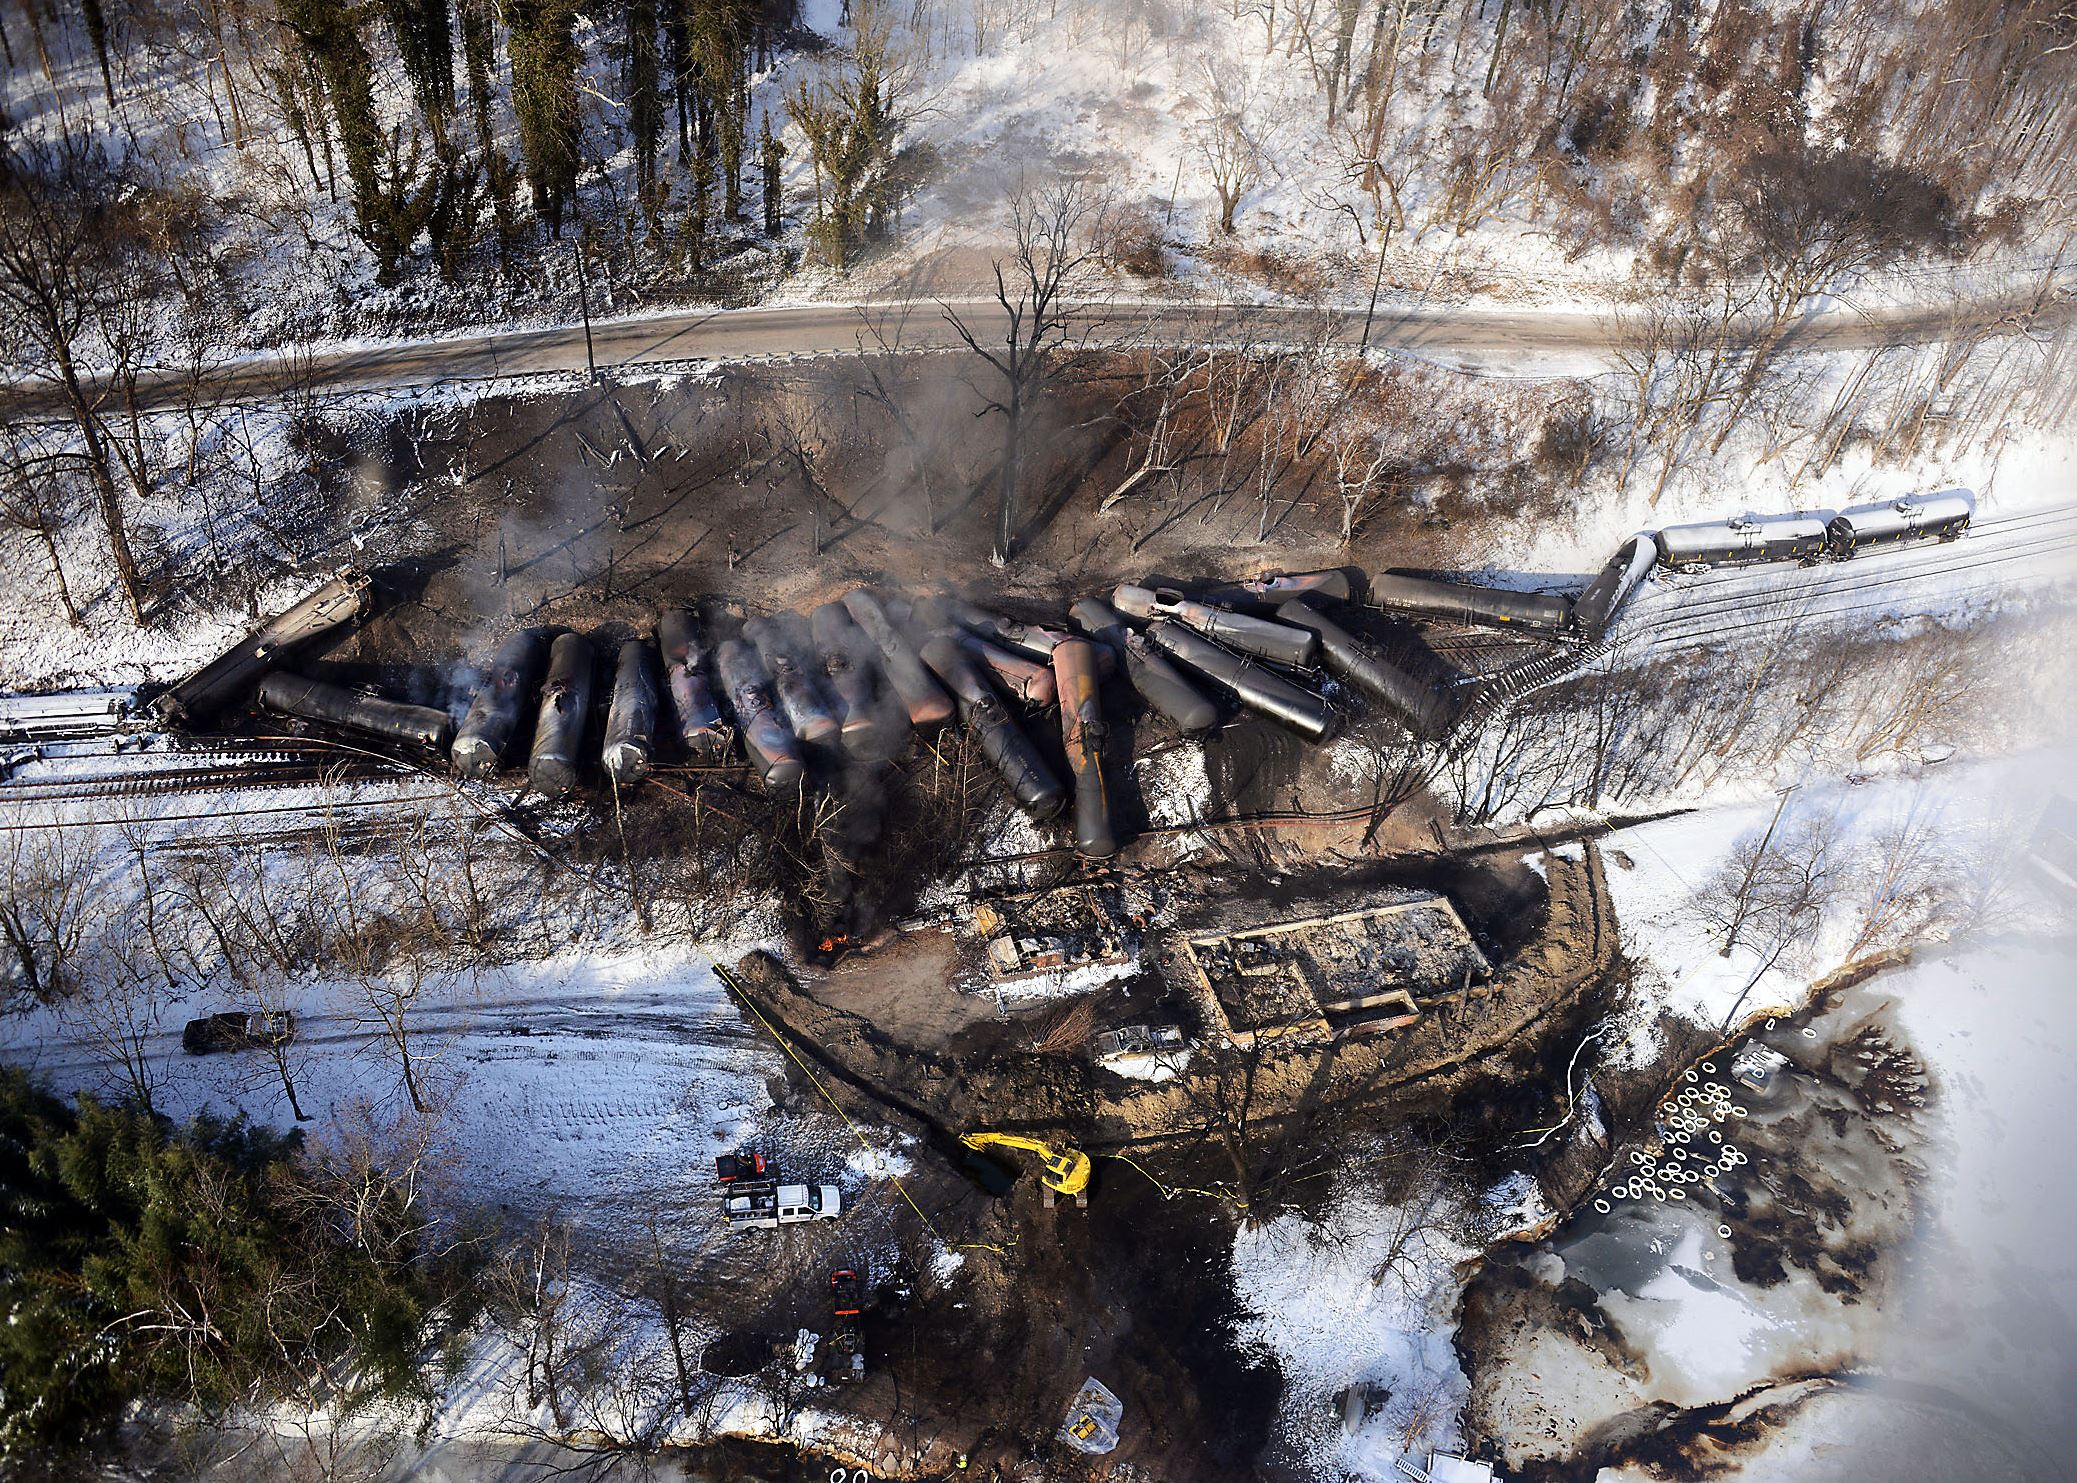 oiltrain3 Response crews for the West Virginia train derailment continue to monitor the burning of the derailed rail cars near Mount Carbon next to the Kanawha River, Feb. 18, 2015. The West Virginia Train Derailment Unified Command continues to work with federal, state and local agencies on the response efforts for the train derailment that occurred near Mount Carbon, Feb. 15, 2015.